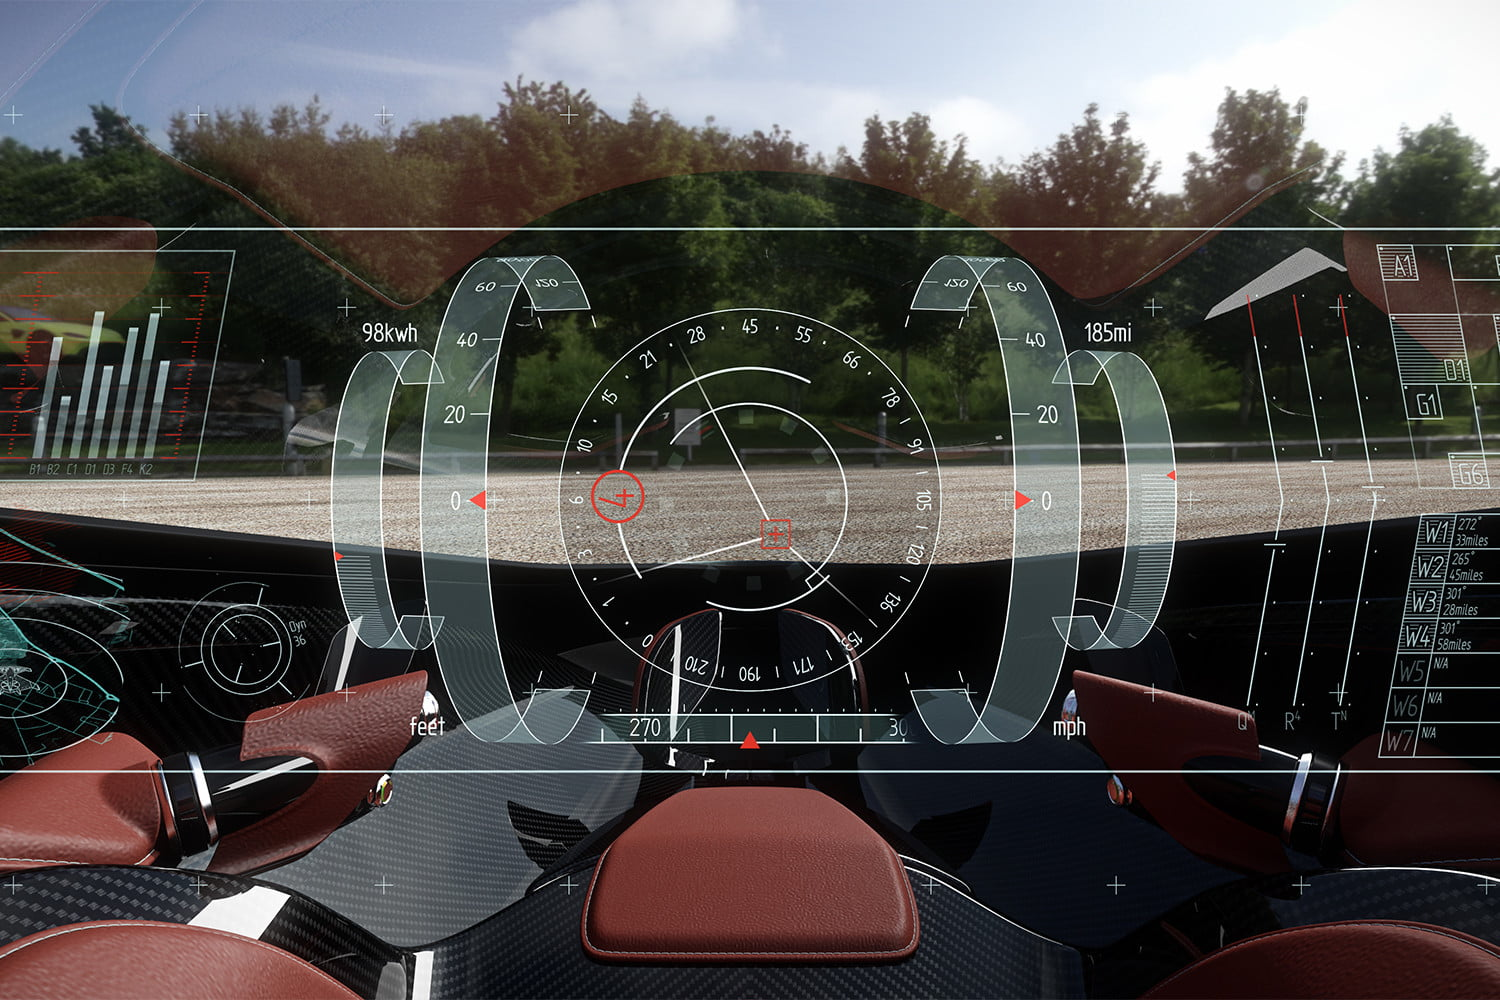 Aston Martin Offers >> Aston Martin's cars figuratively fly. The Vision Volante does it - KTEN.com - Texoma news ...